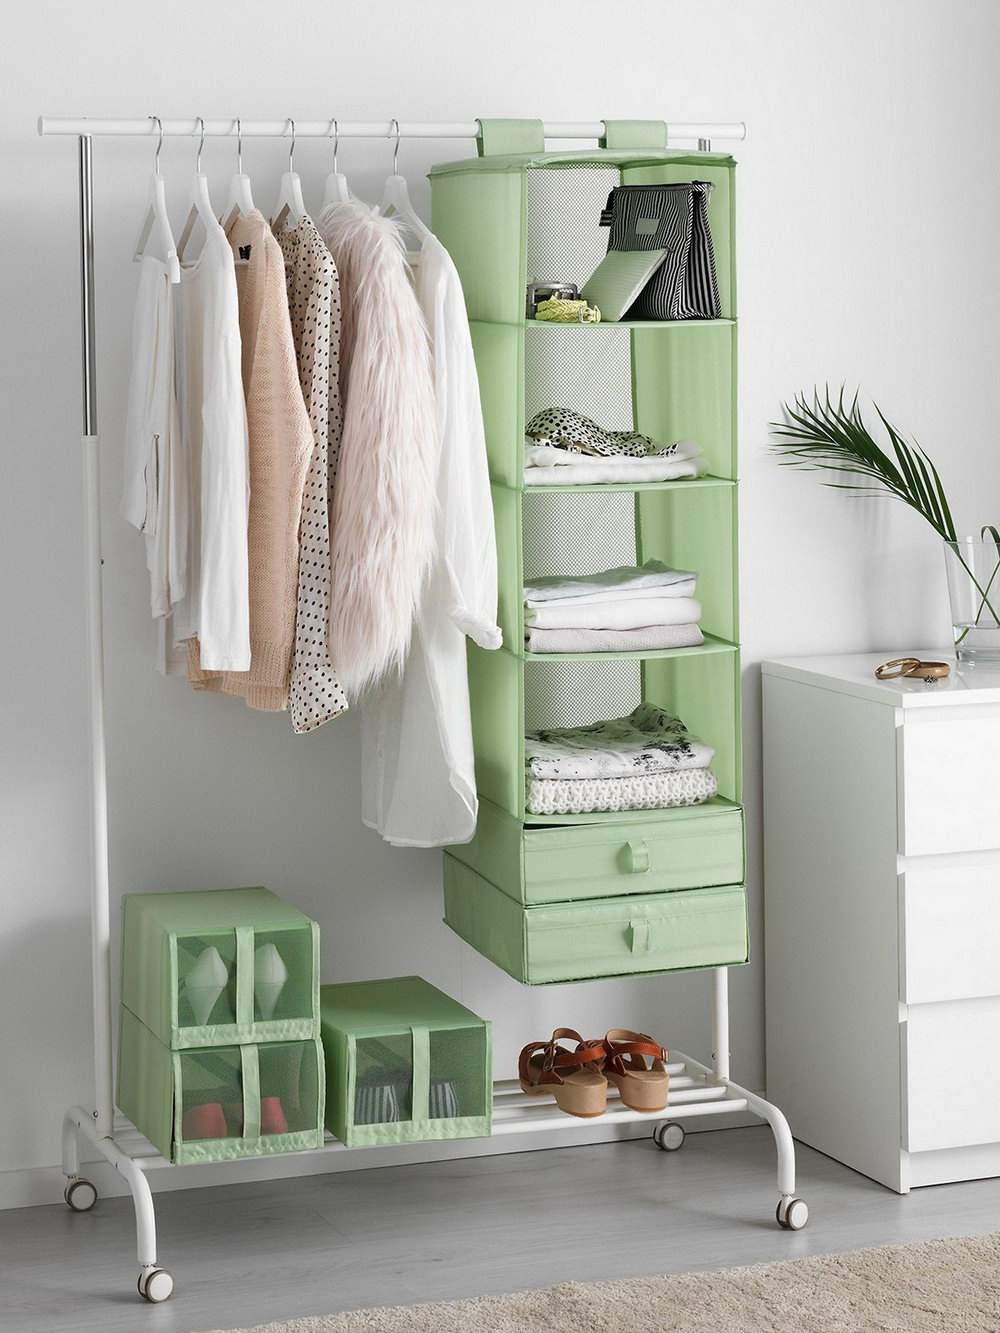 Closet Storage Ideas Ikeacloset Storage Ideas Ikeacloset Storage Ideas Ikea